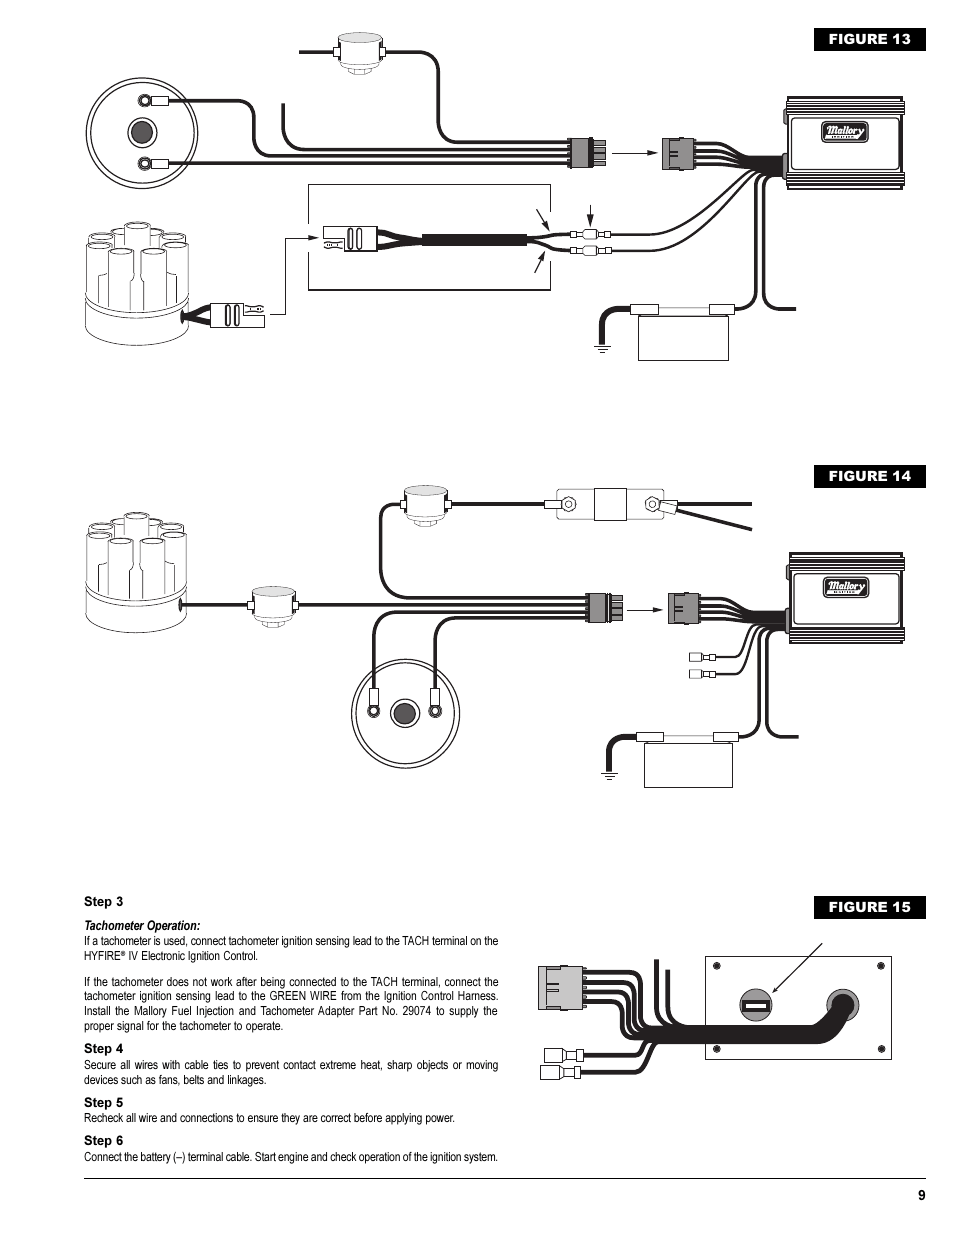 Accel Ignition Wiring Diagram Pro Tach Wiring Diagram • ss.co on dyna 2000i ignition dip switches, dyna shift minder wiring diagrams, 2004 f350 ignition switch diagram, 2000 gsxr 750 wire diagram, single fire ignition system diagram, coil wiring diagram, harley wiring harness diagram, harley-davidson dyna 2000i installation diagram, dyna s ignition diagram, dyna s ignition problems, dyna single fire ignition, dyna turn signal wiring diagram, 02 focus ignition diagram, dyna 2000i wiring, dyna 4000 wiring-diagram, ignition coil diagram, 1970 suburban ignition wire diagram,